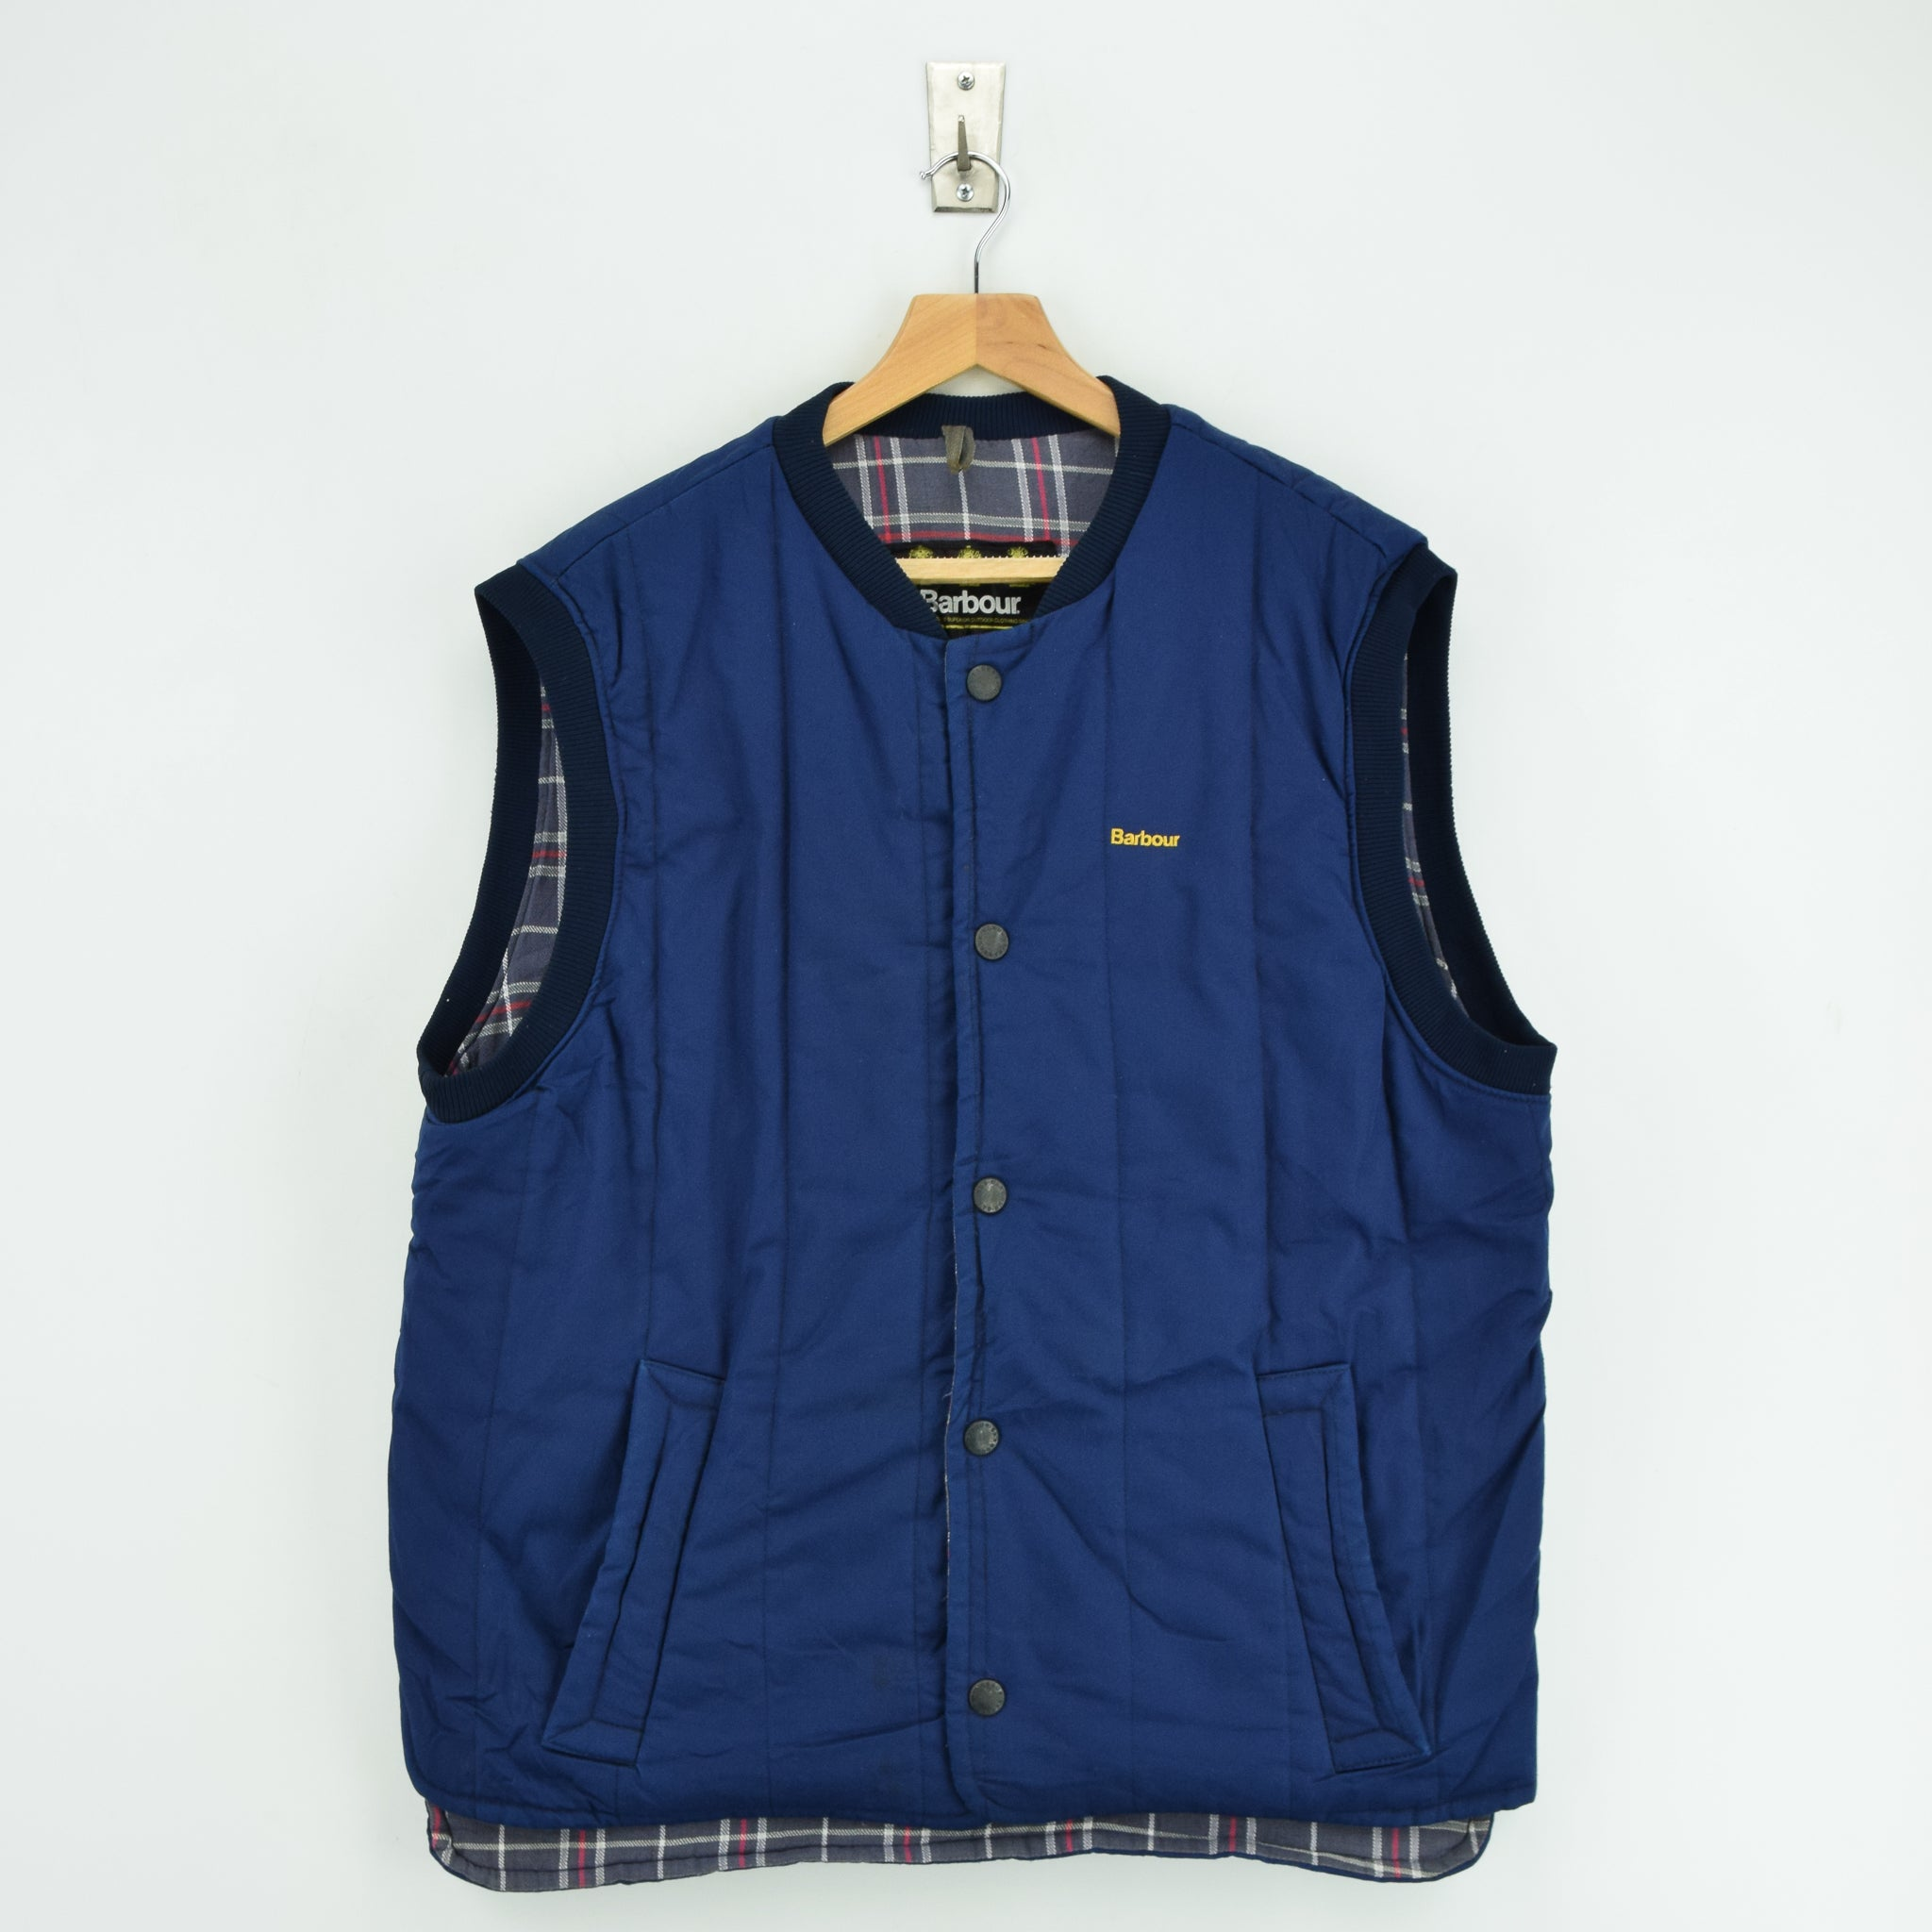 Vintage Barbour Shooting Hunting Blue Quilted Gilet Vest Made In England M / L front